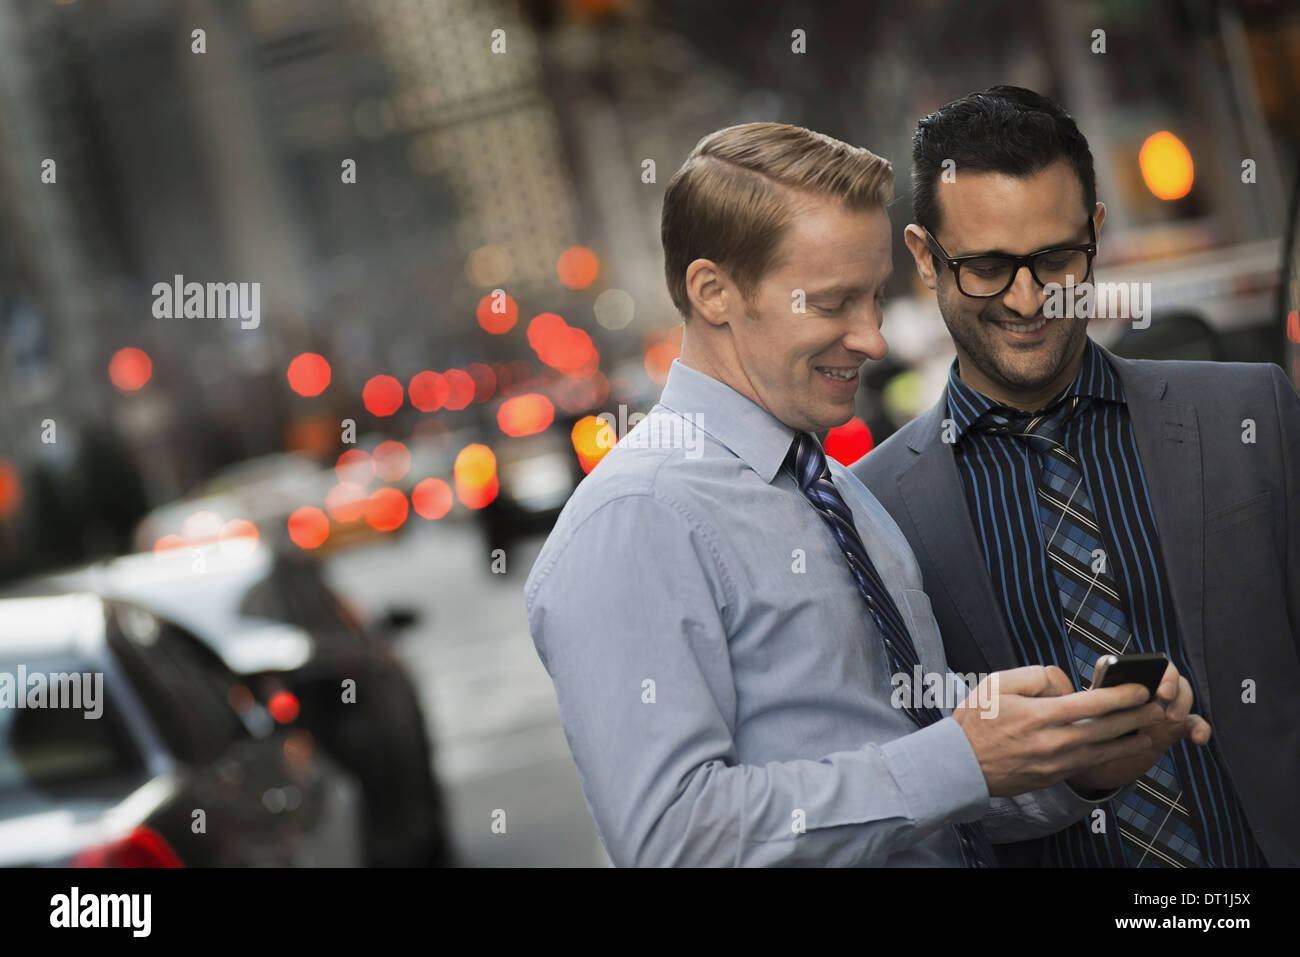 Two men standing together looking at a cell phone display on a busy street at dusk - Stock Image